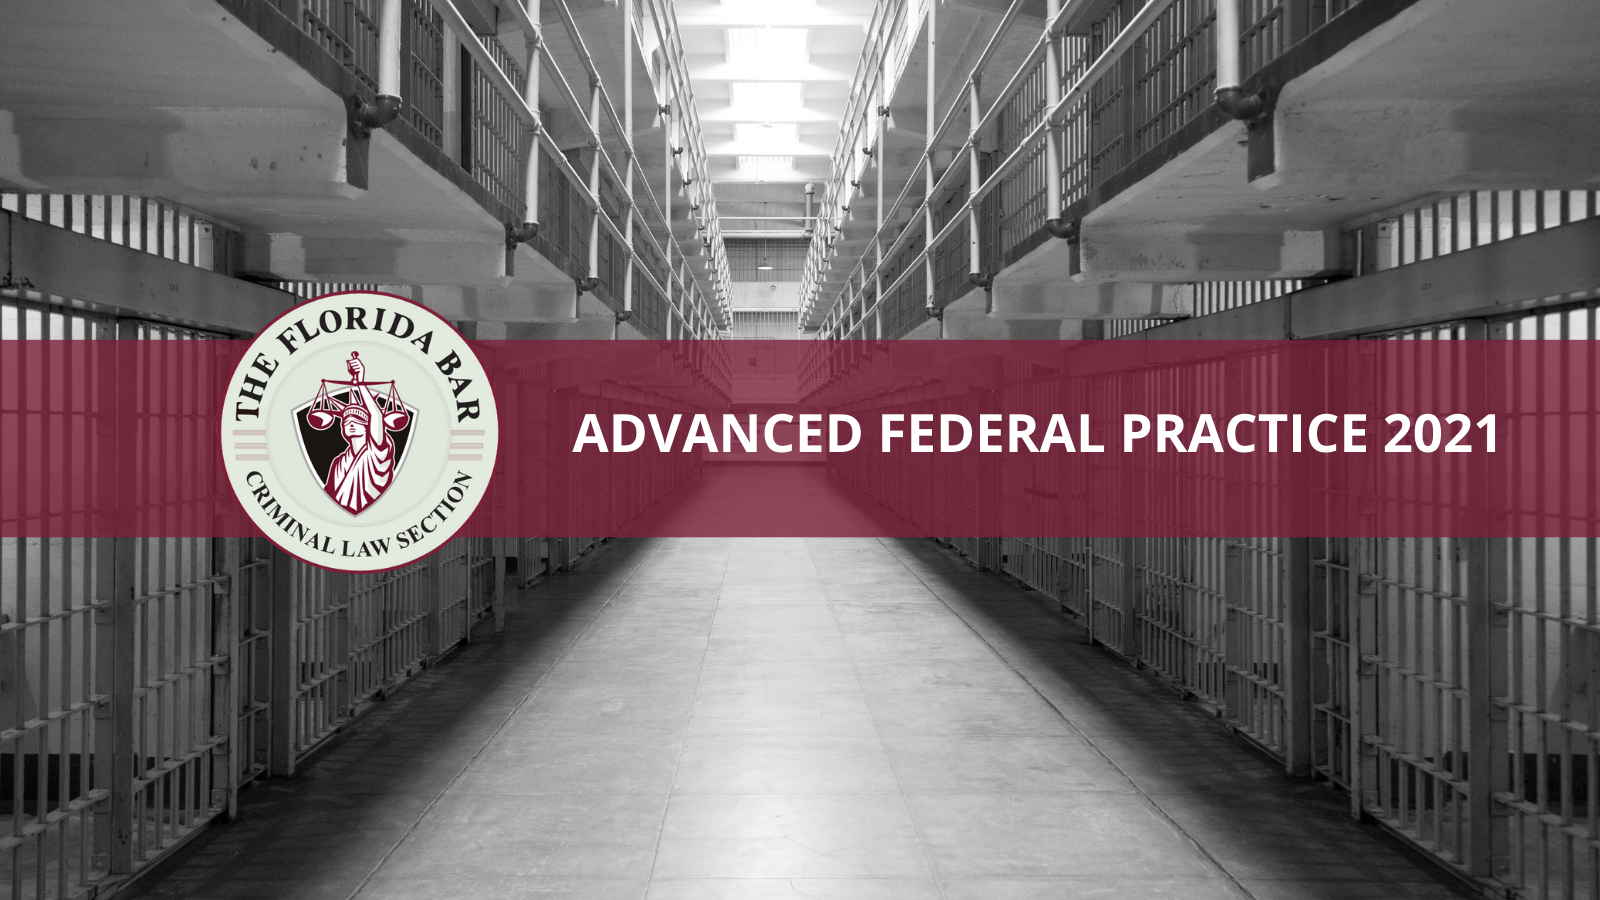 Advanced Federal Practice 2021